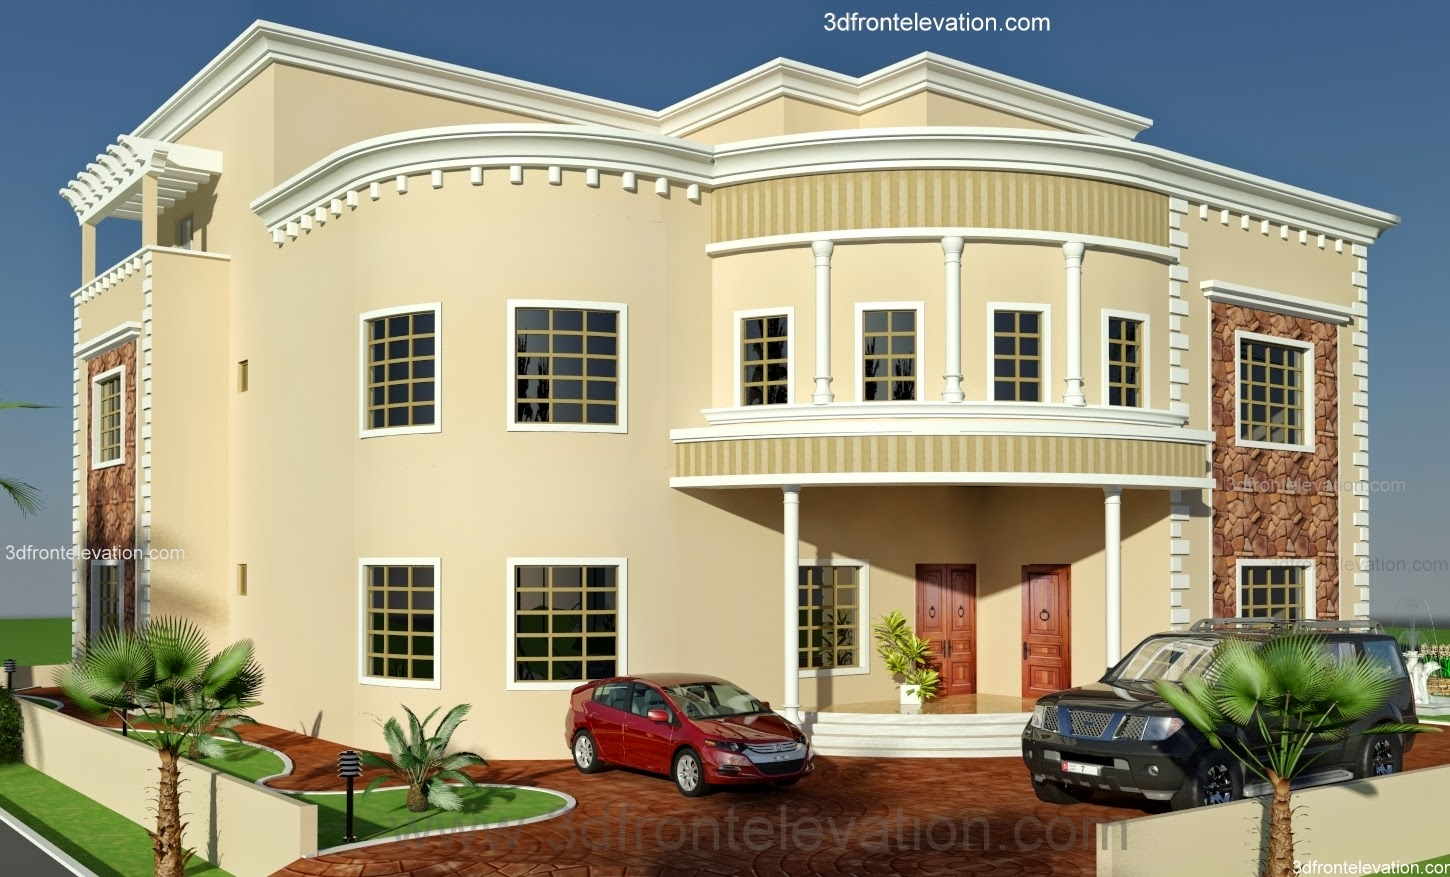 Oman new arabian villa plan design duplex